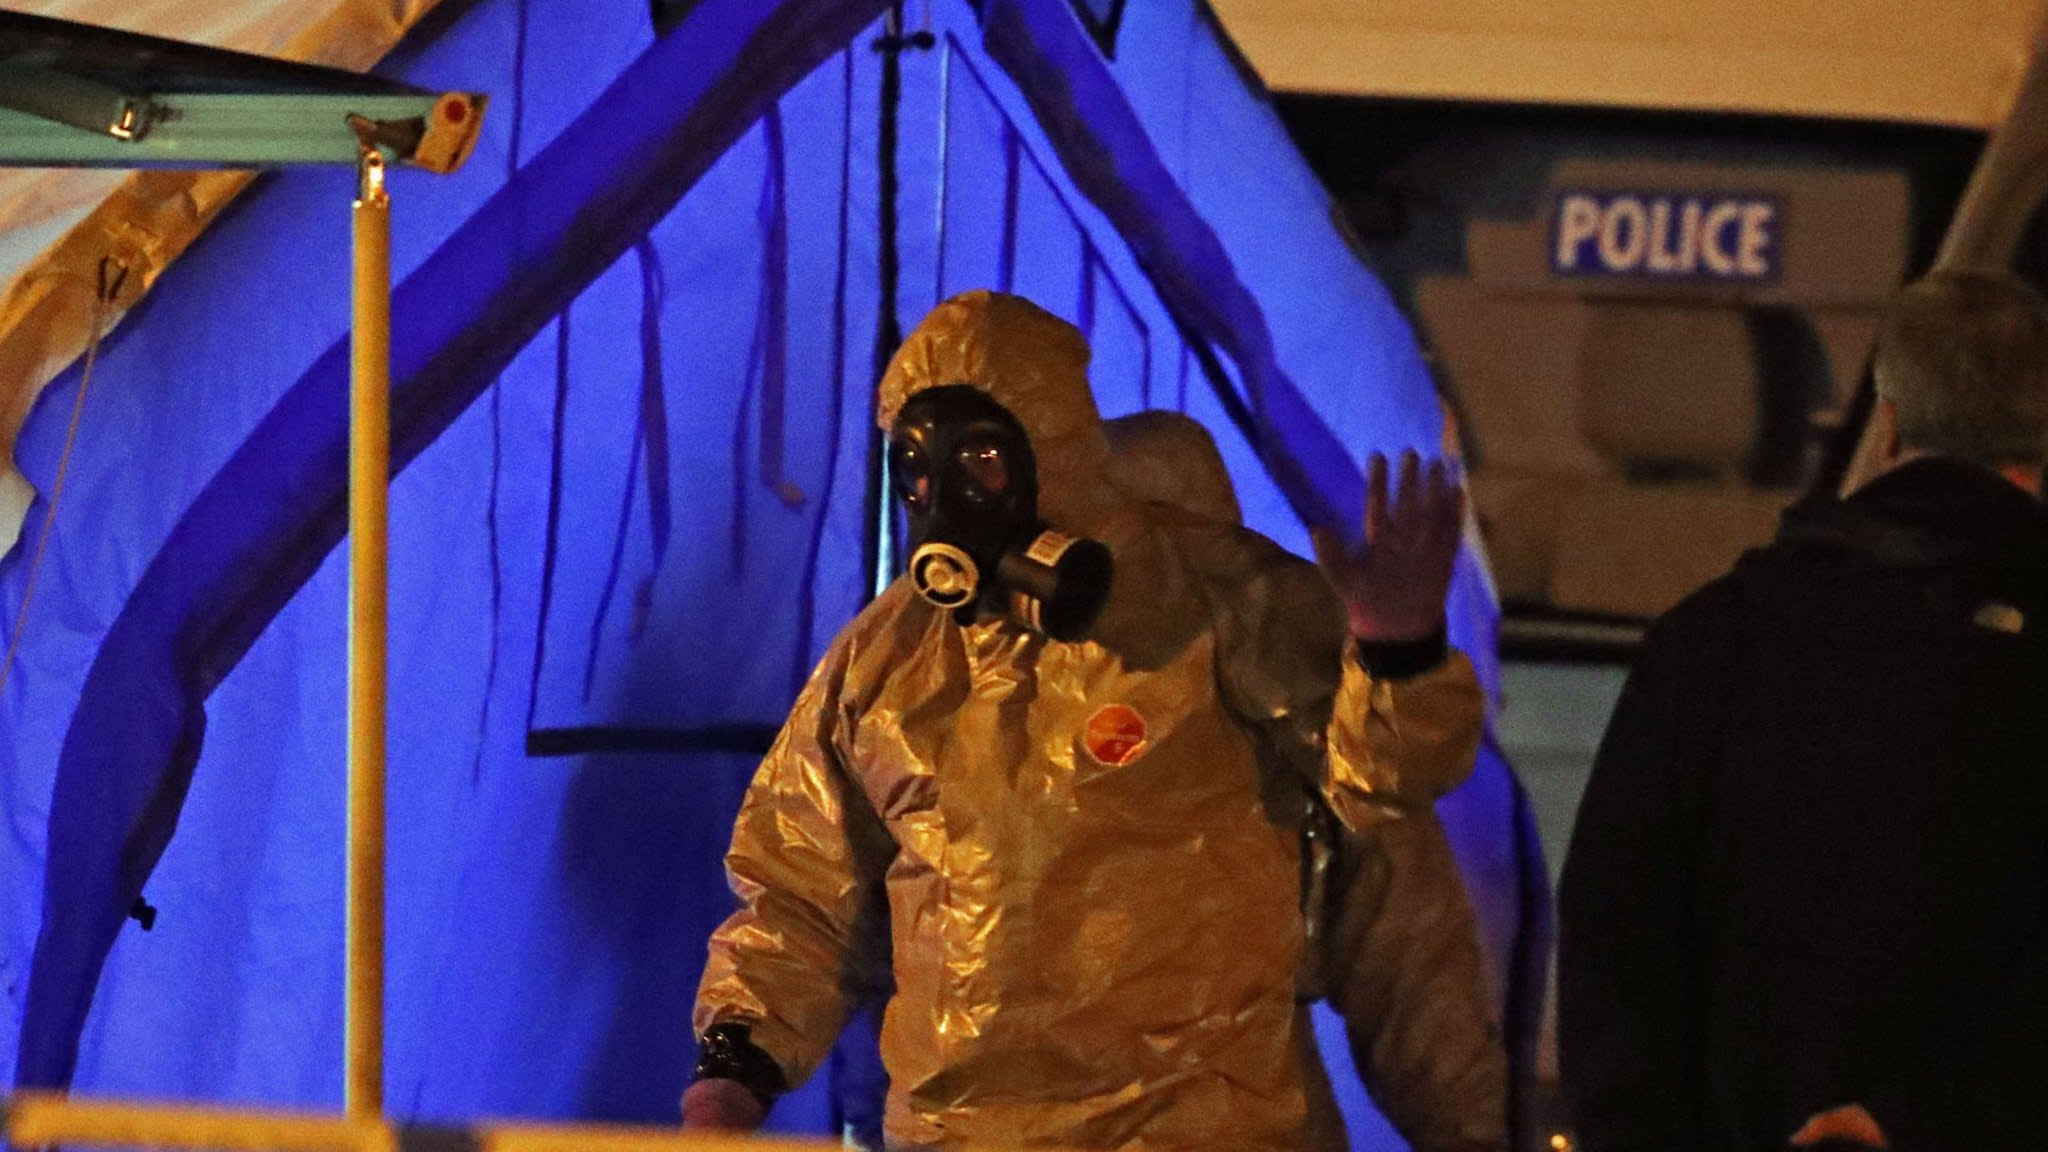 UK police say nerve agent used in attack on ex-Russian spy